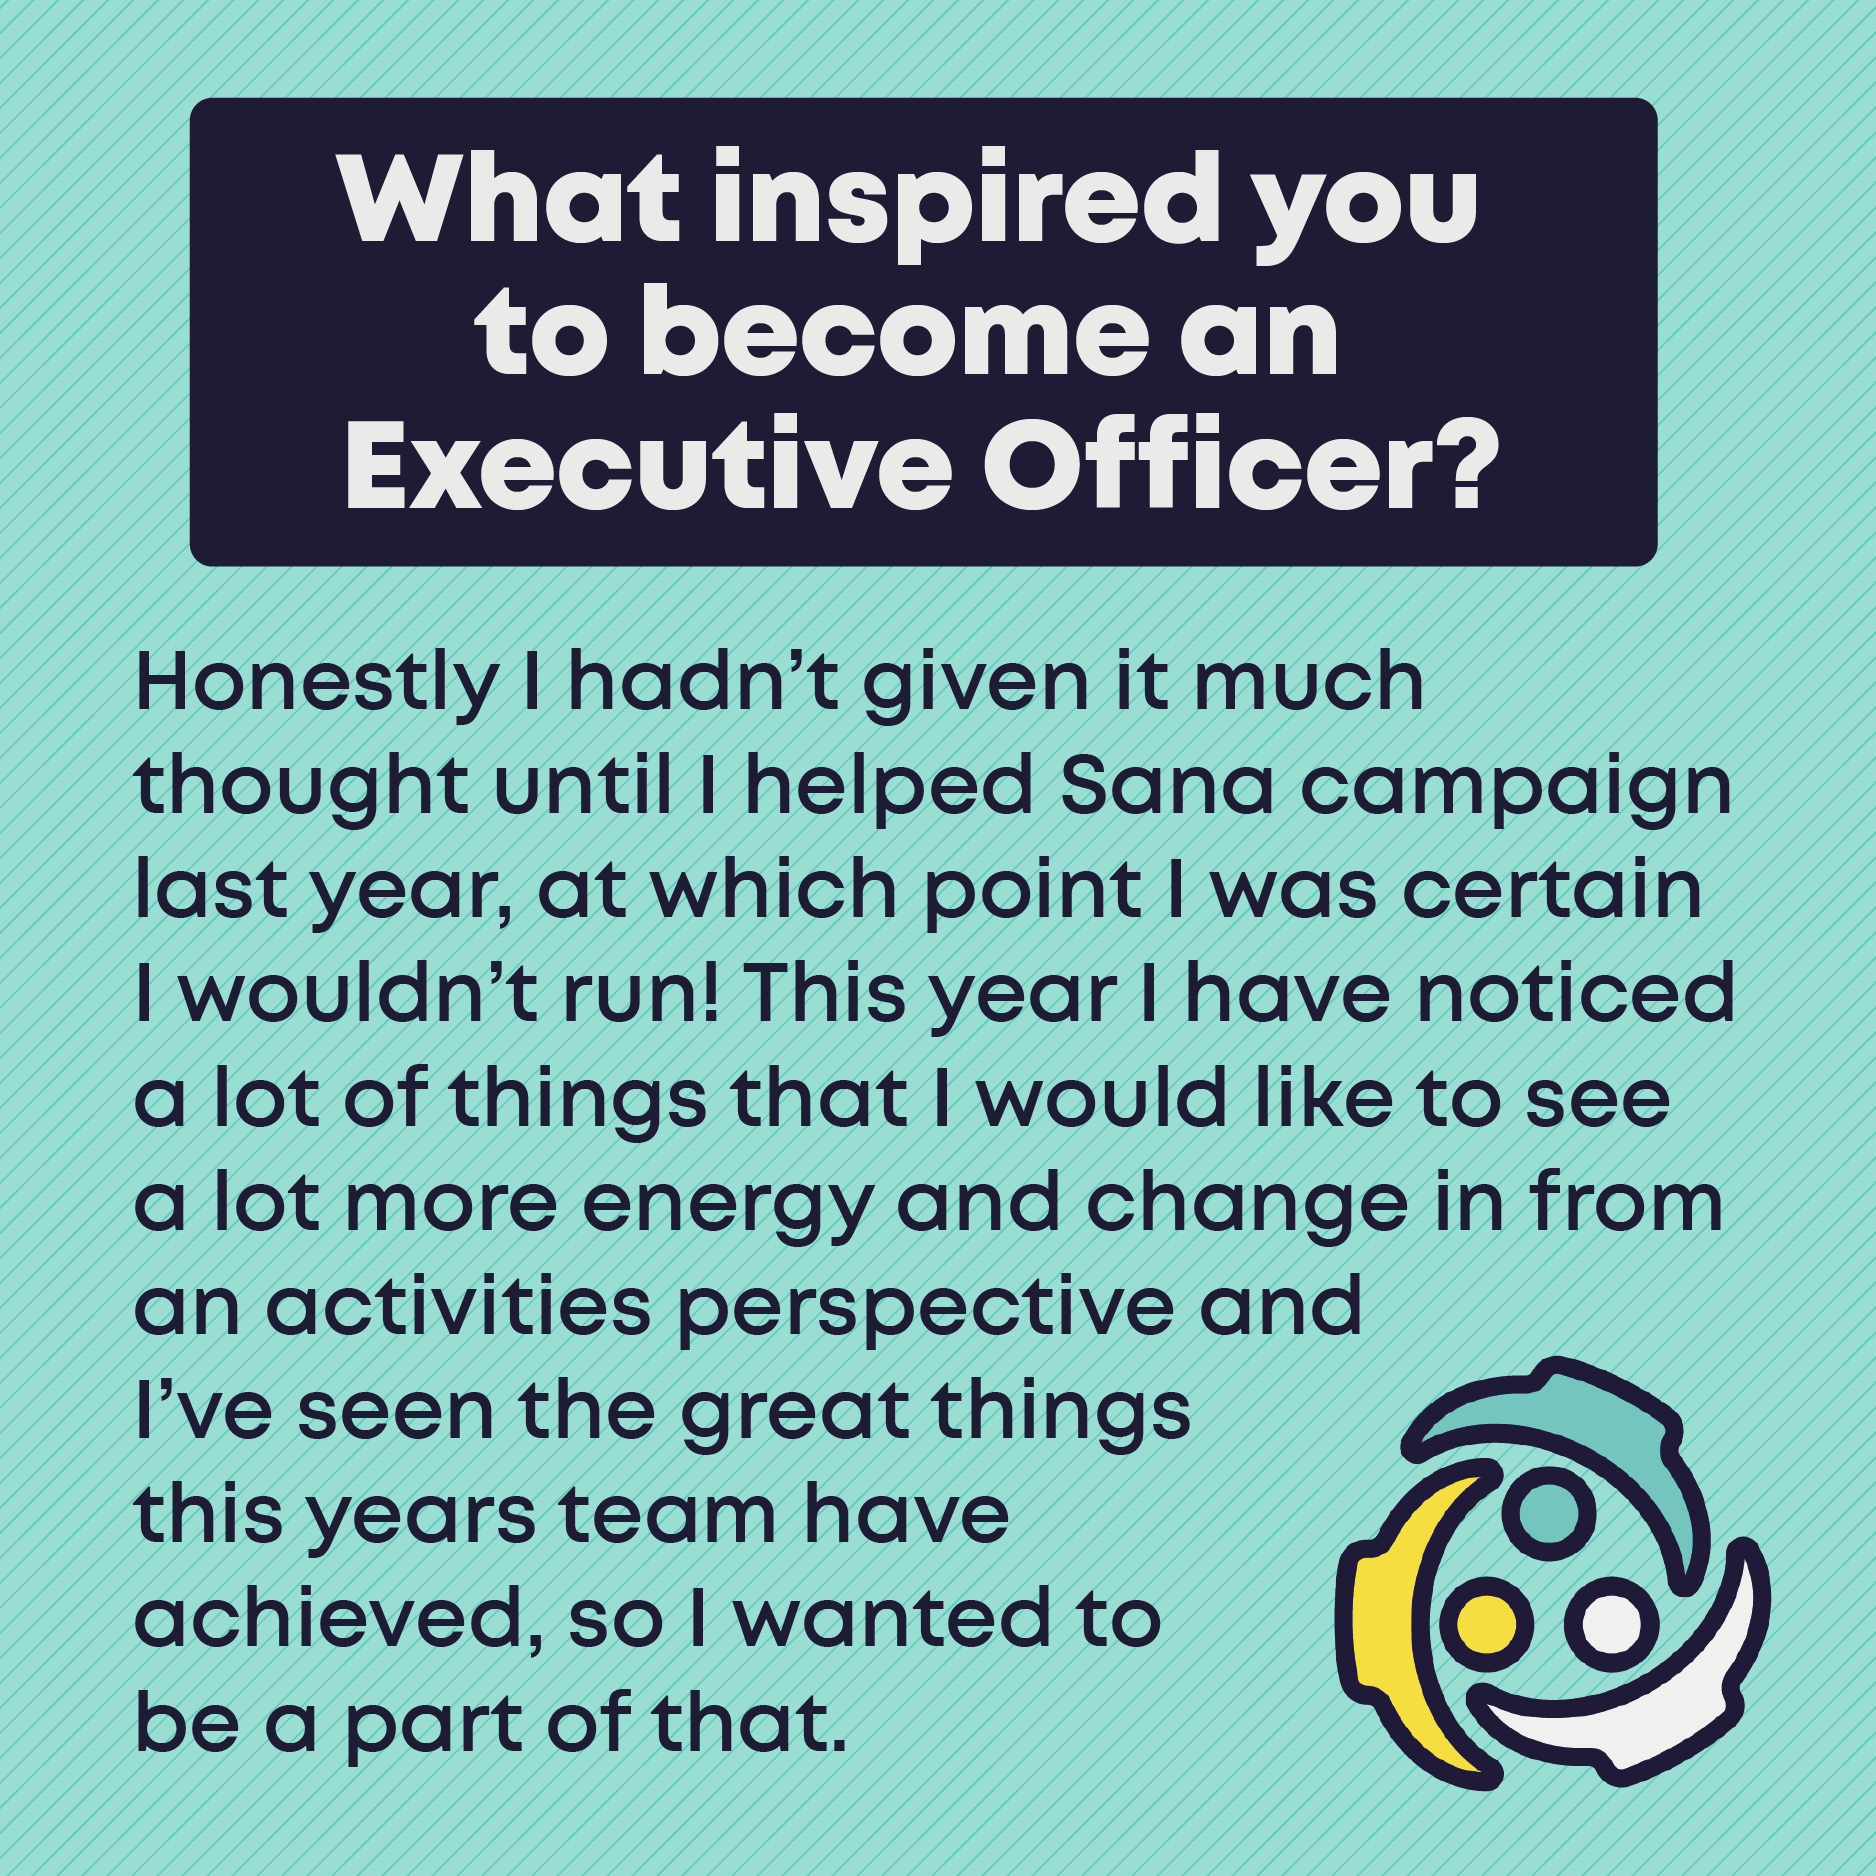 What inspired you to become an Executive Officer? Honestly I hadn't given it much thought until I helped Sana campaign last year, at which point I was certain I wouldn't run! This year I have noticed a lot of things that I would like to see a lot more energy and change in from an activities perspective and I've seen the great things this years team have  achieved, so I wanted to  be a part of that.